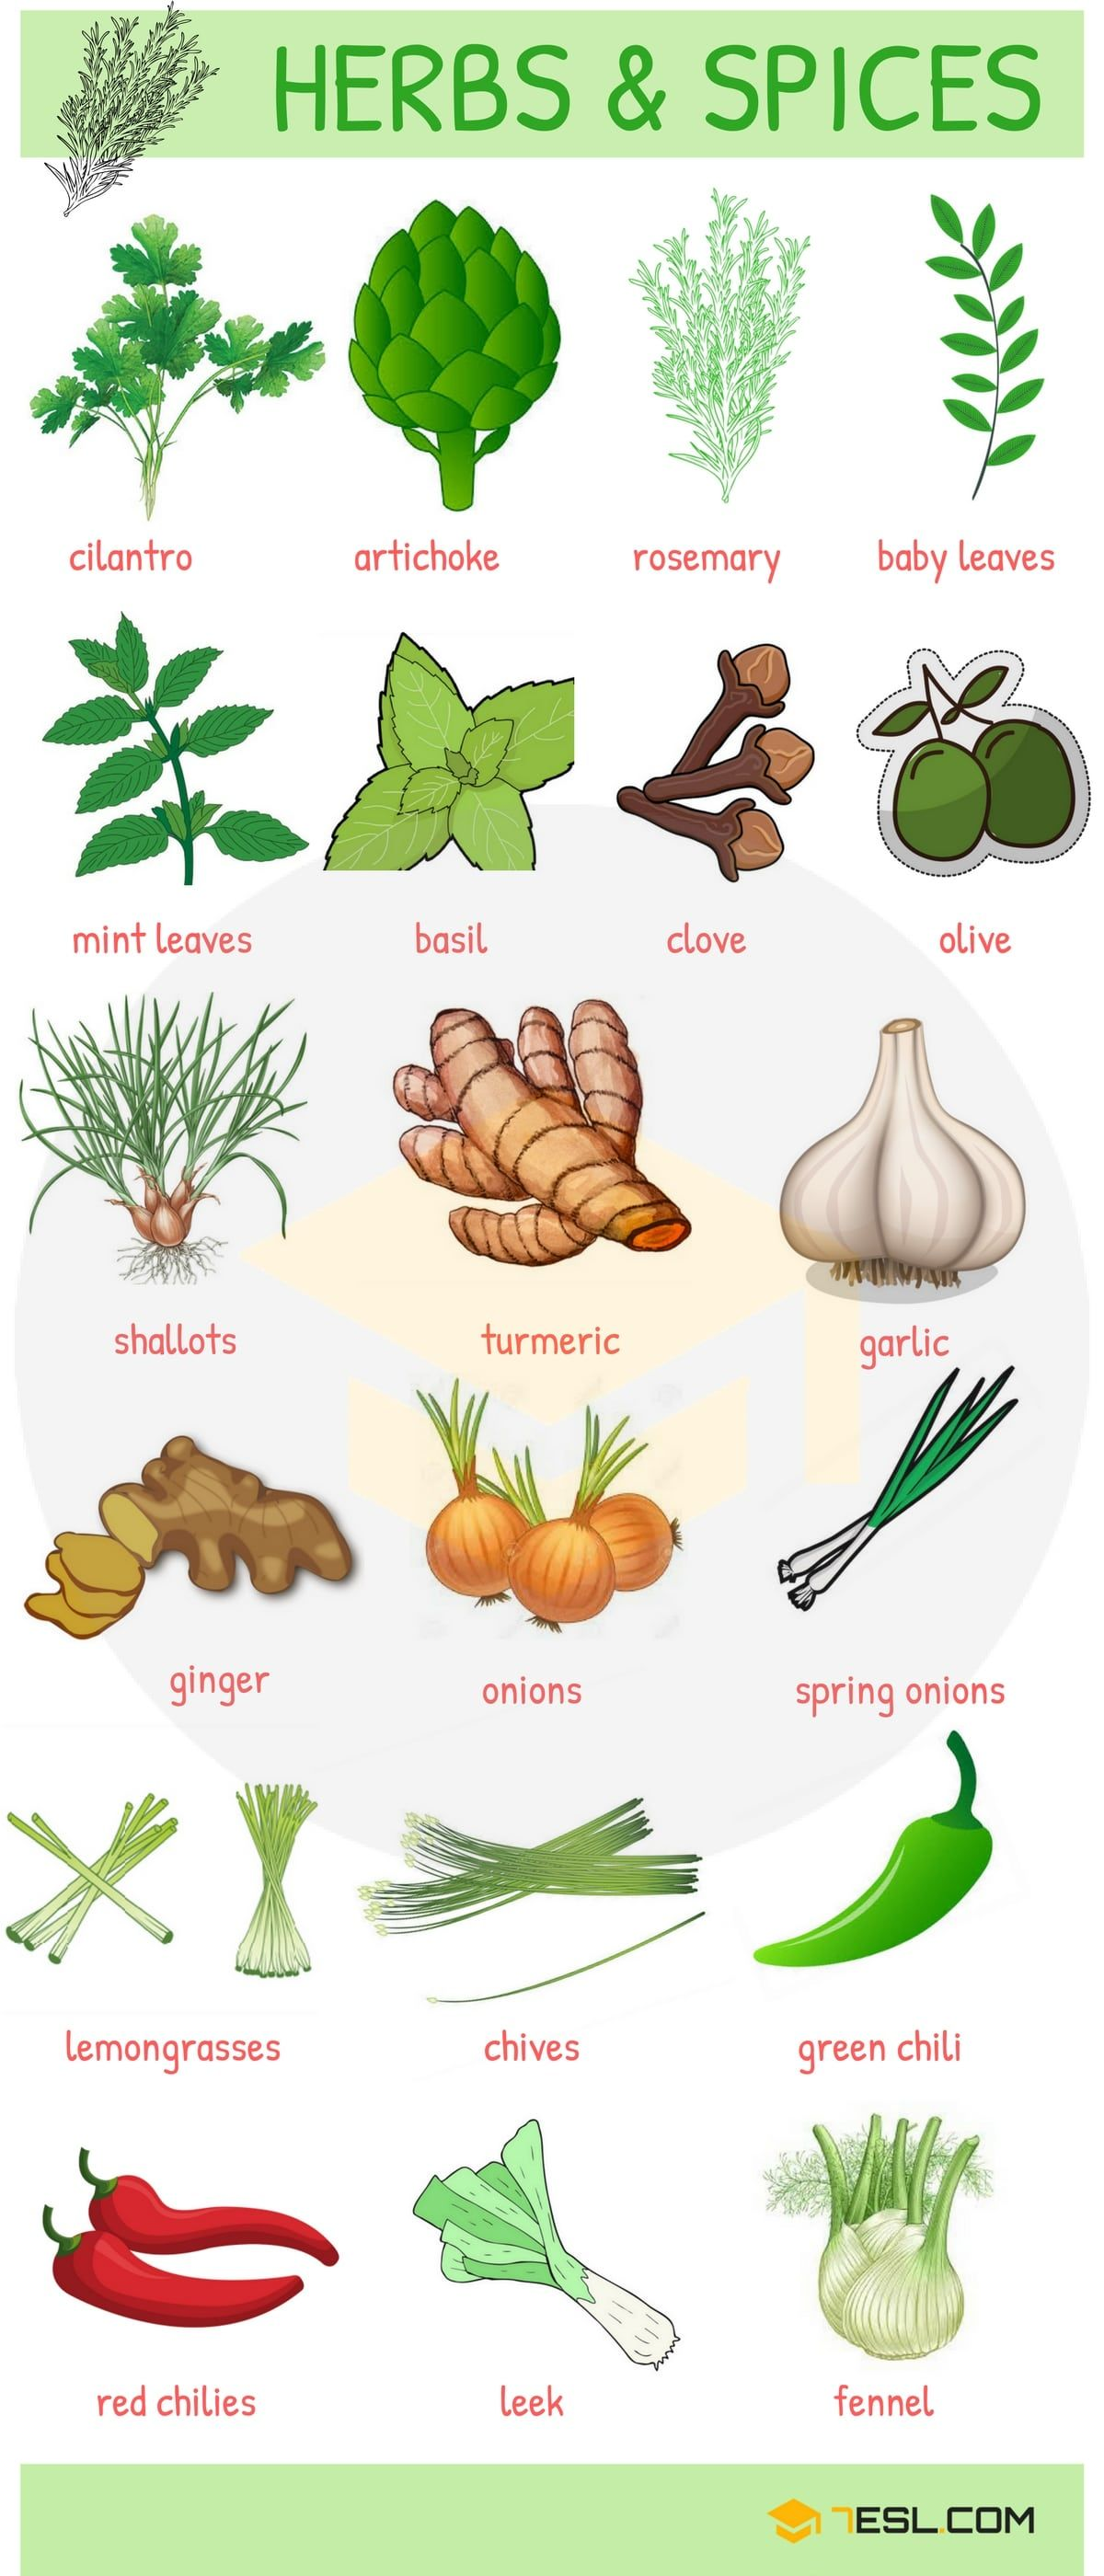 Fruits And Vegetables List English Names And Pictures 7 E S L English Vocabulary Name Of Vegetables Learn English Vocabulary